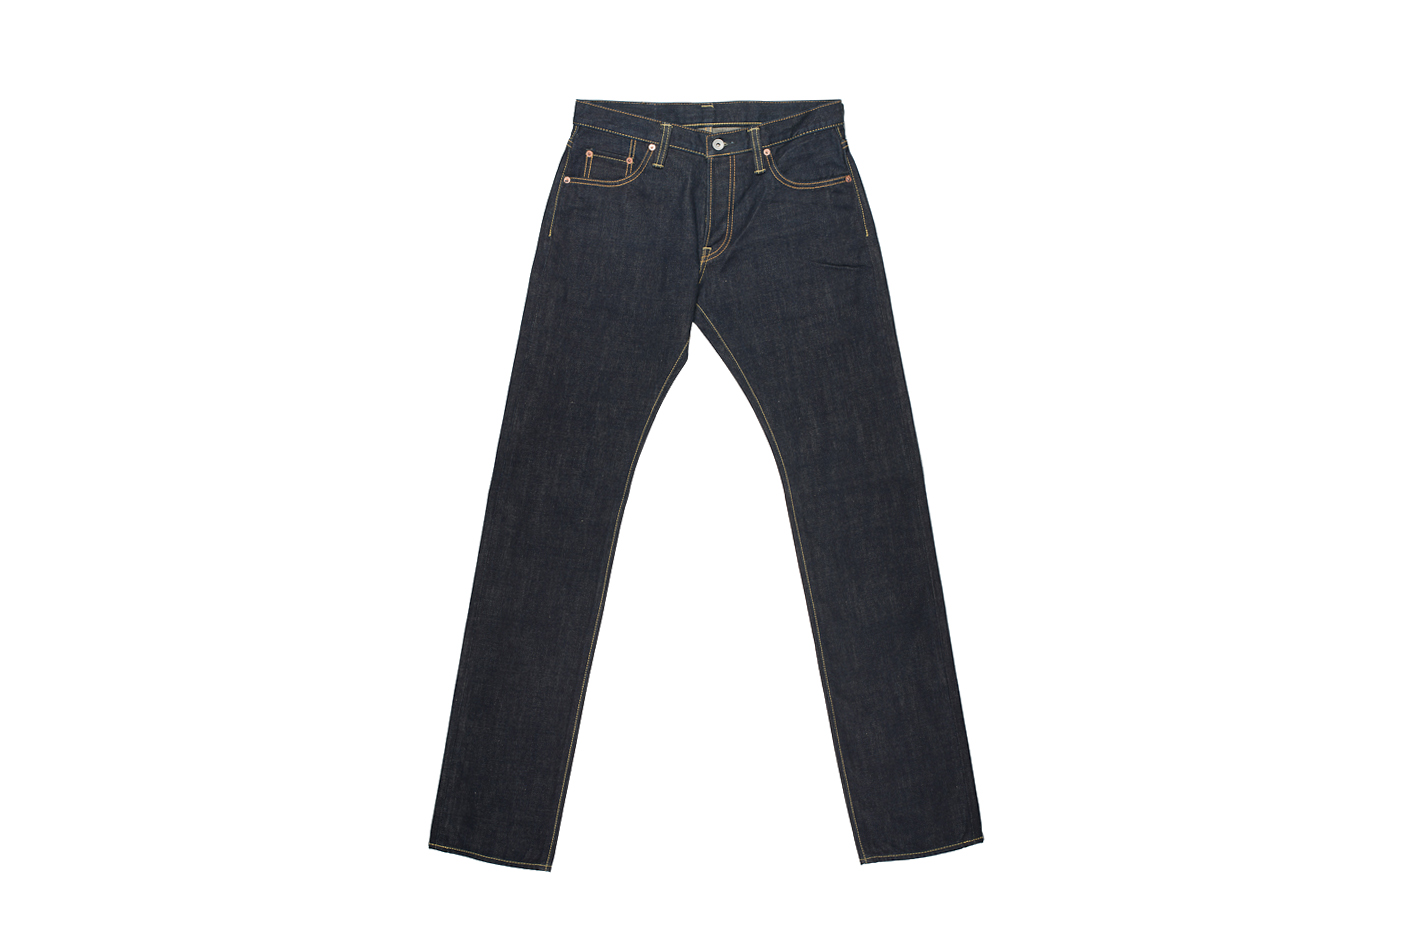 Iron Heart 301N 17oz Natural Indigo Jean - Slim Tapered - Image 5